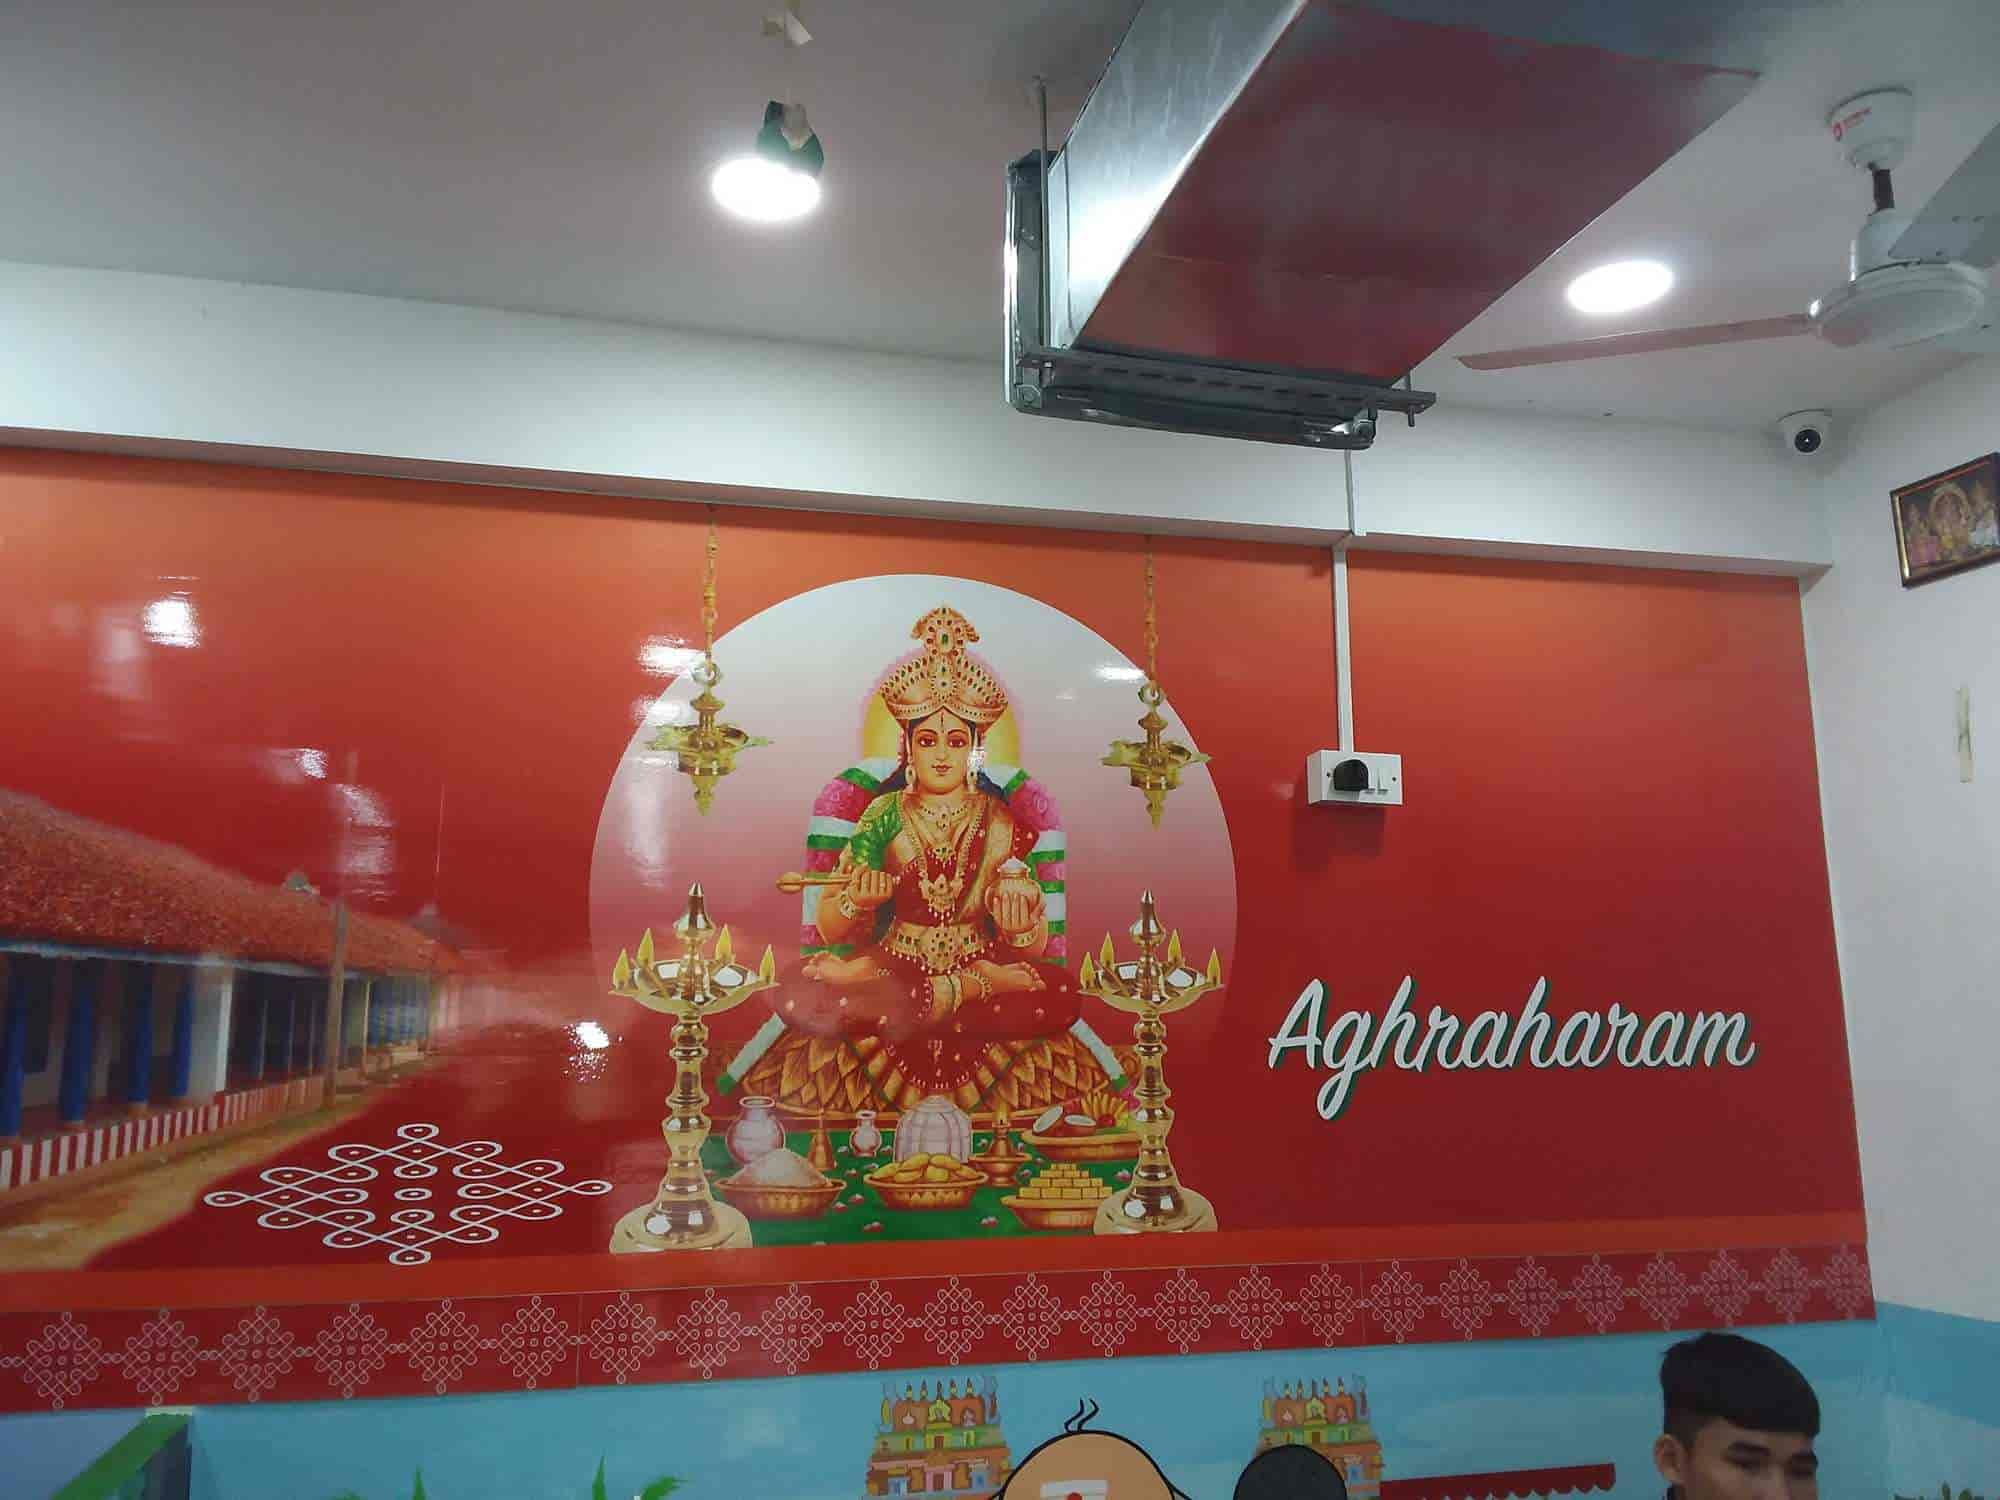 Aghraharam Thousand Lights Chennai North Indian Chinese Desserts Breakfast South Indian Pure Vegetarian Cuisine Restaurant Justdial